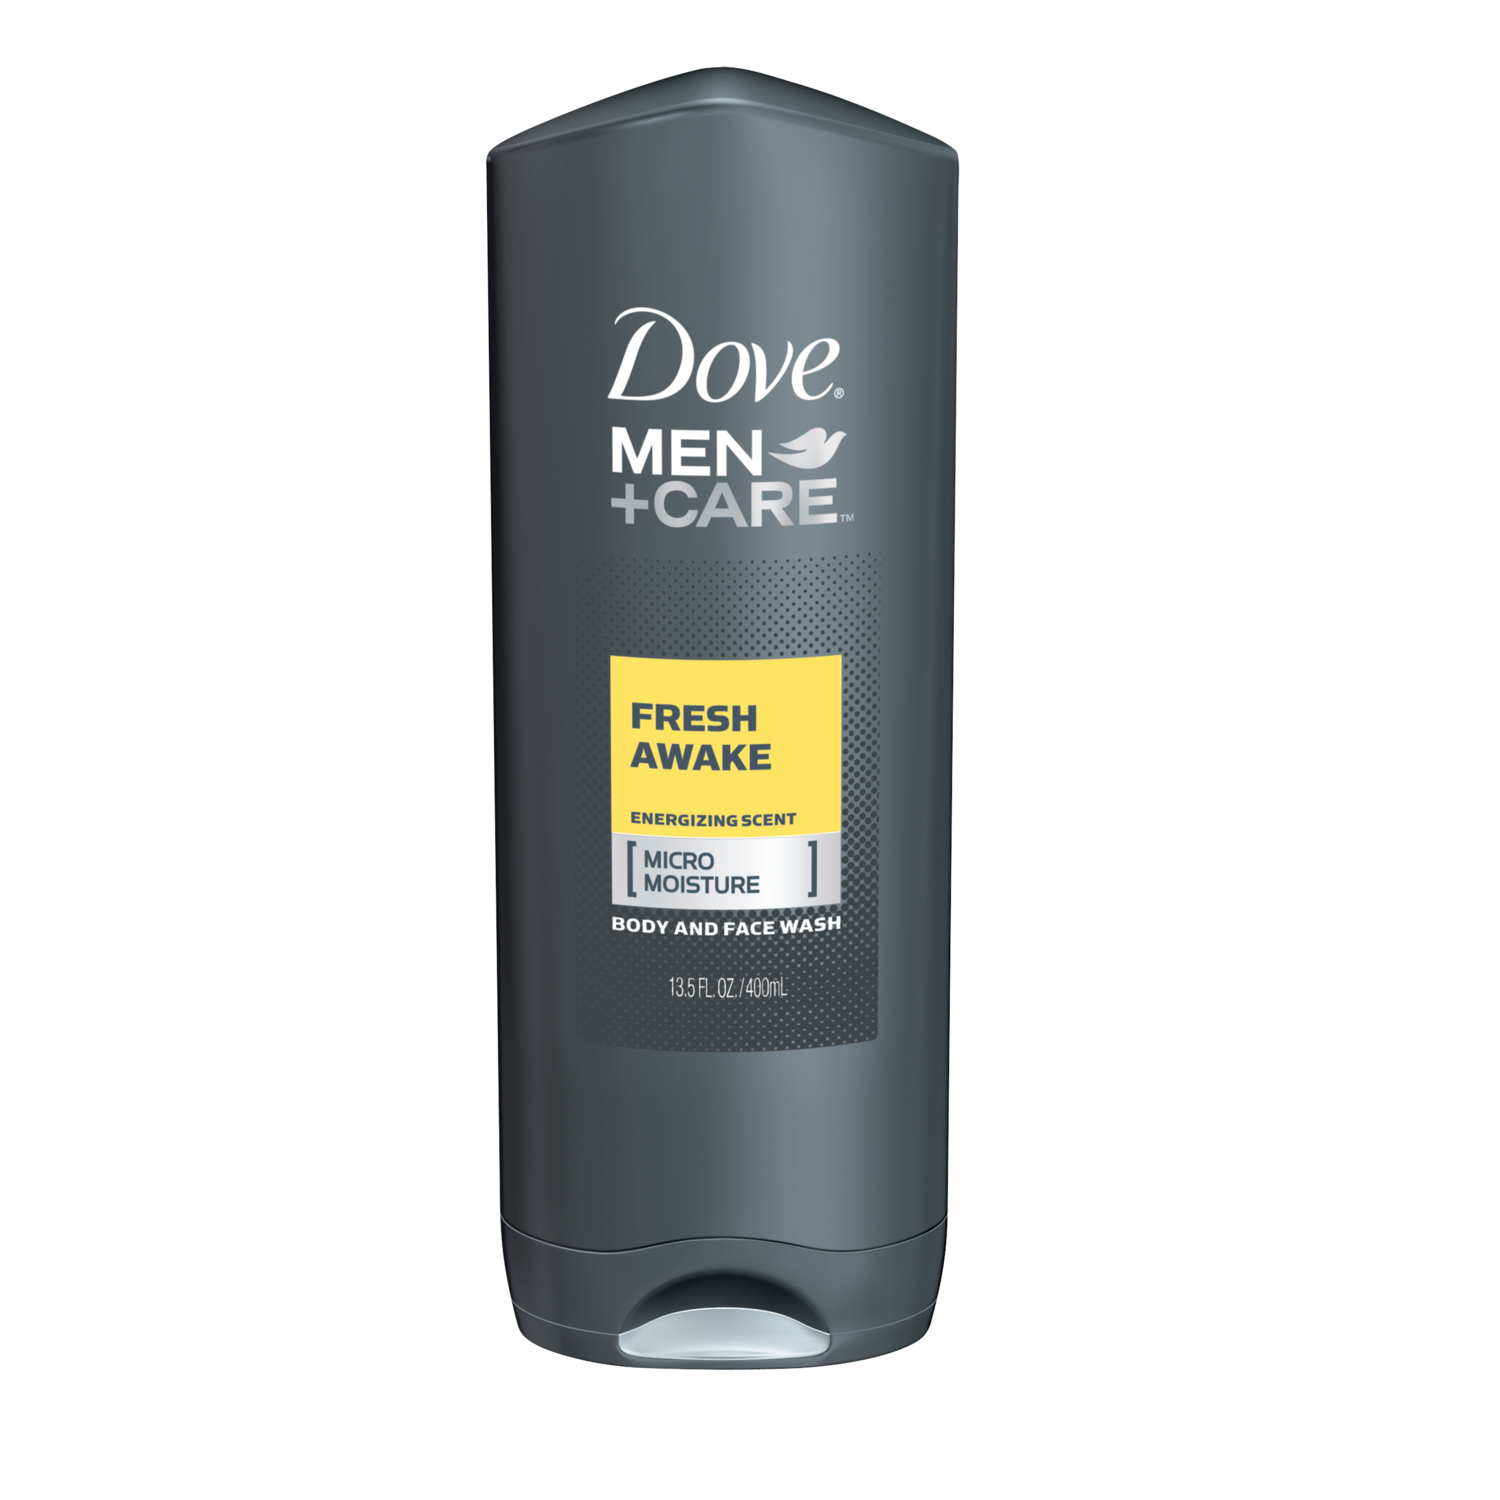 Dove Men Care Fresh Awake Body And Face Wash